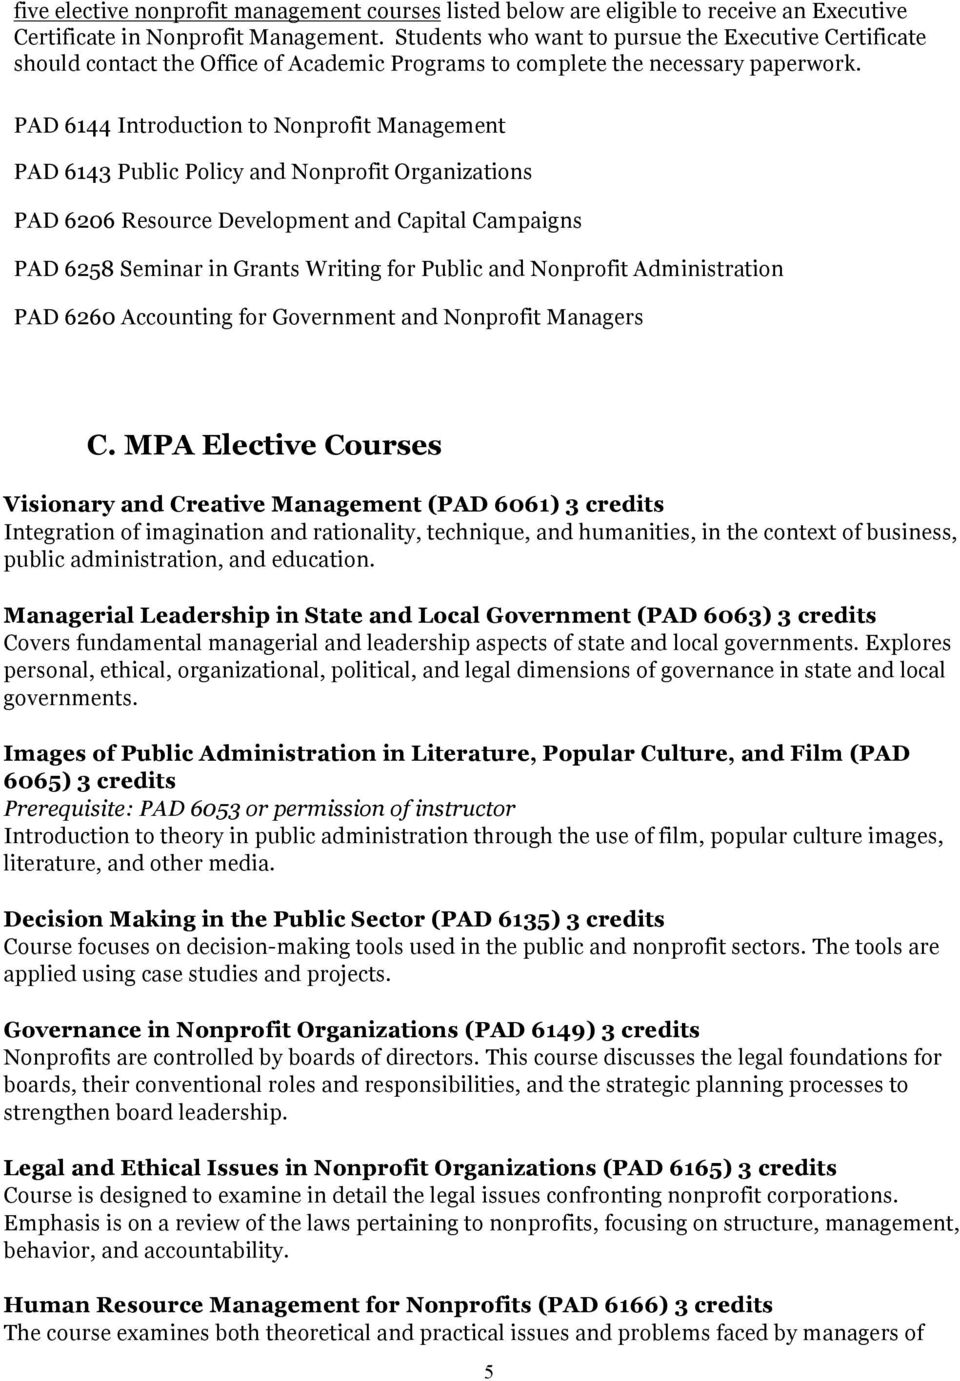 PAD 6144 Introduction to Nonprofit Management PAD 6143 Public Policy and Nonprofit Organizations PAD 6206 Resource Development and Capital Campaigns PAD 6258 Seminar in Grants Writing for Public and